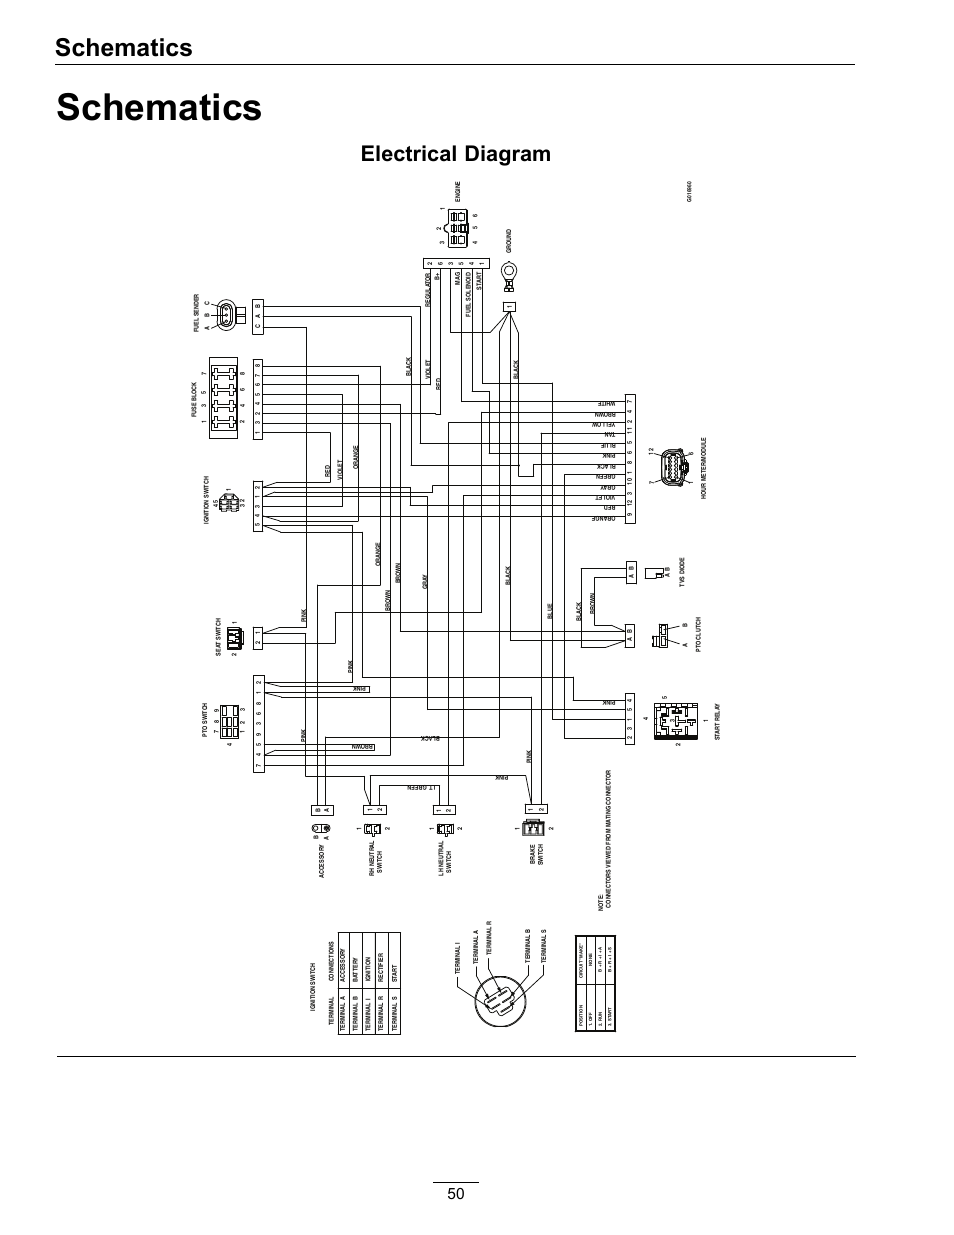 1974 Mg Midget Wiring Diagram